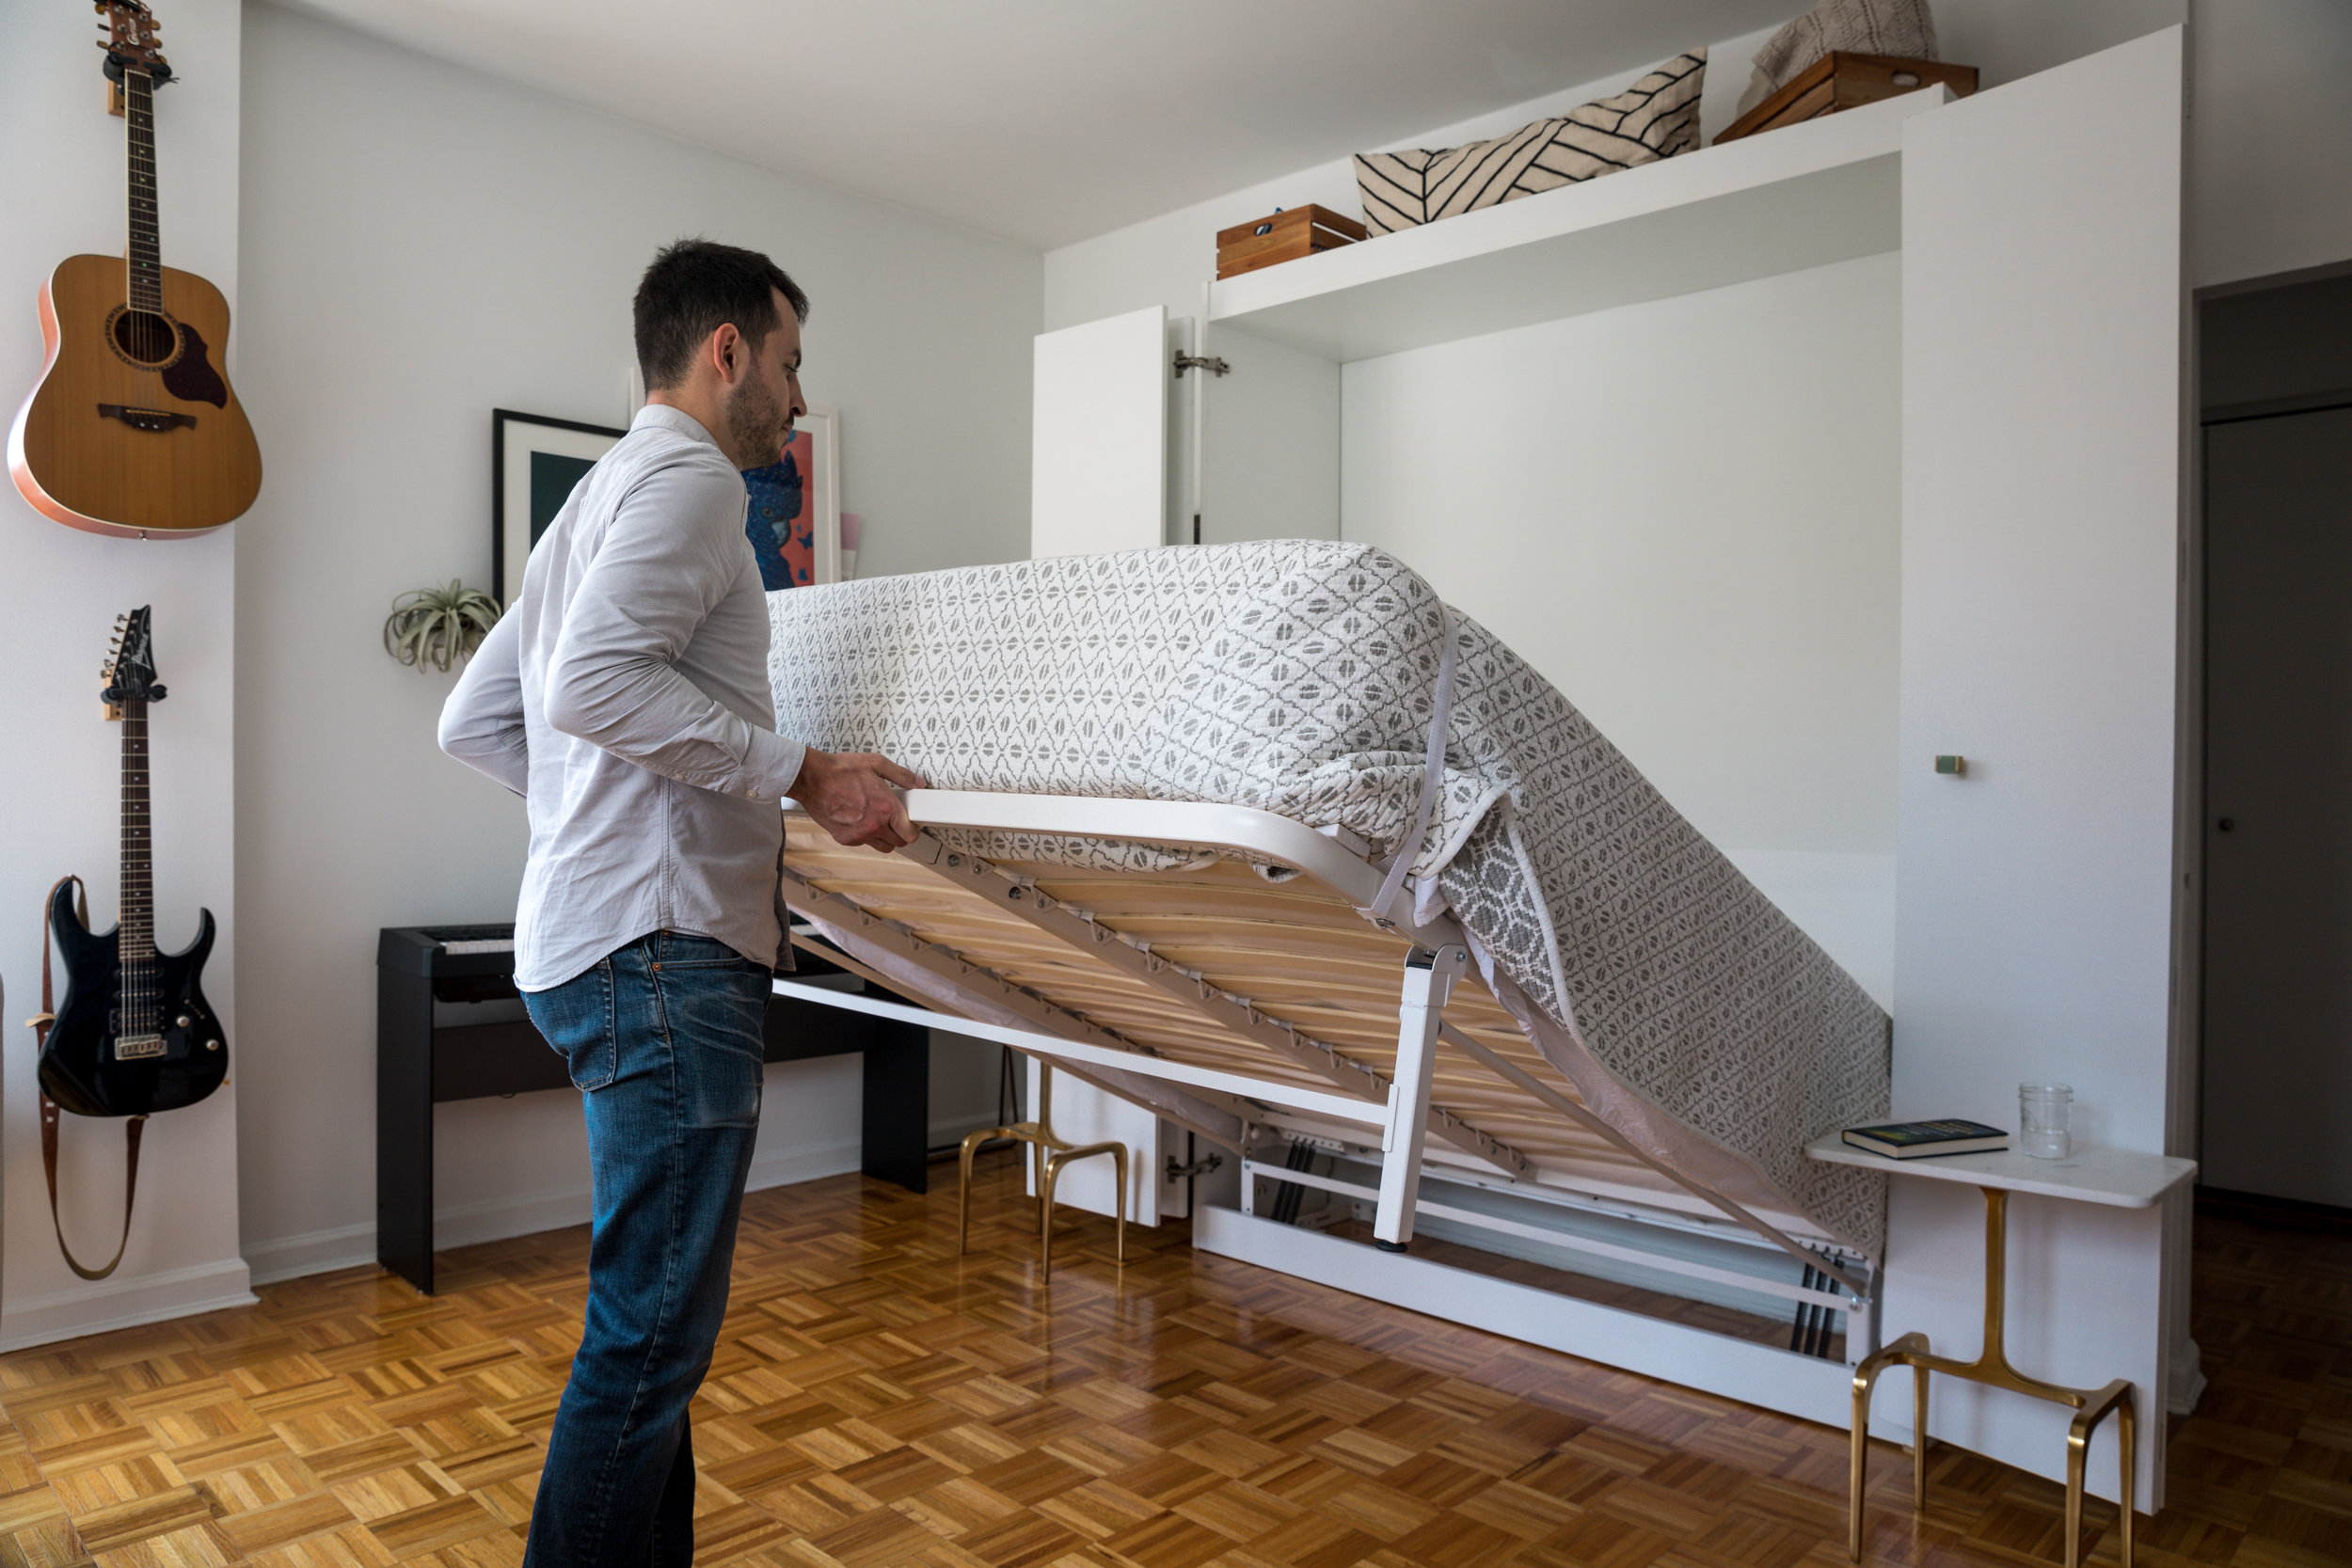 Our third wall bed in New York